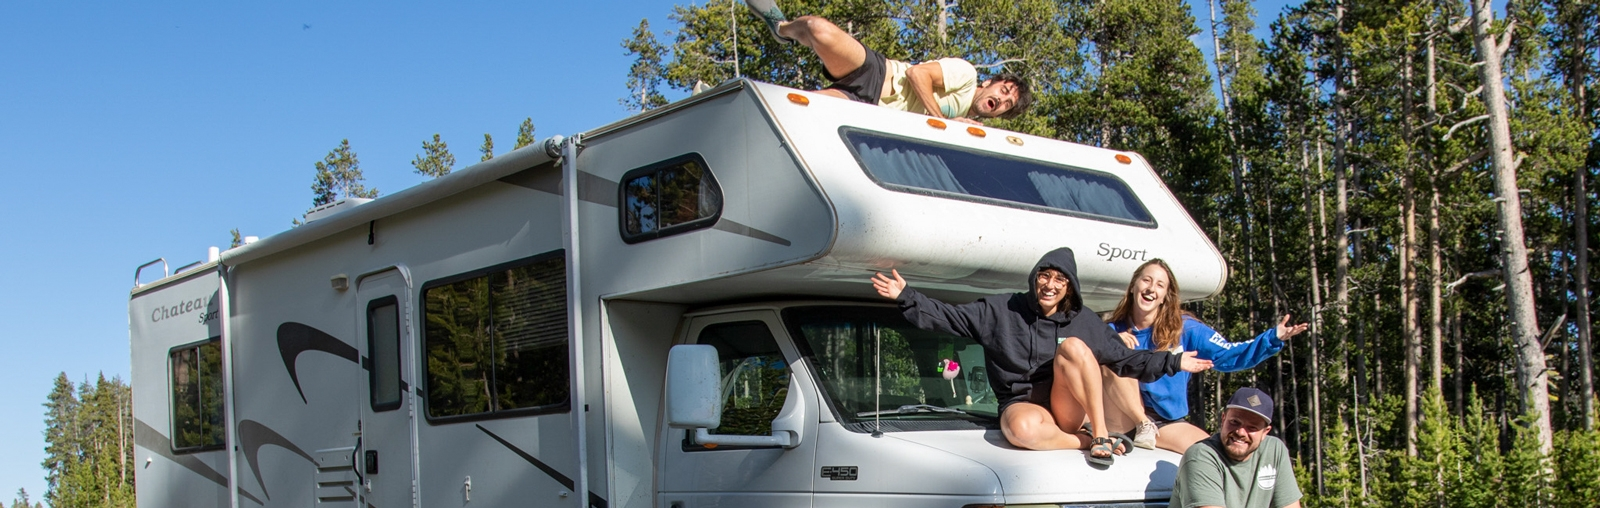 Education Abroad advisor Mike Merrill (at front of RV) and his travel companions